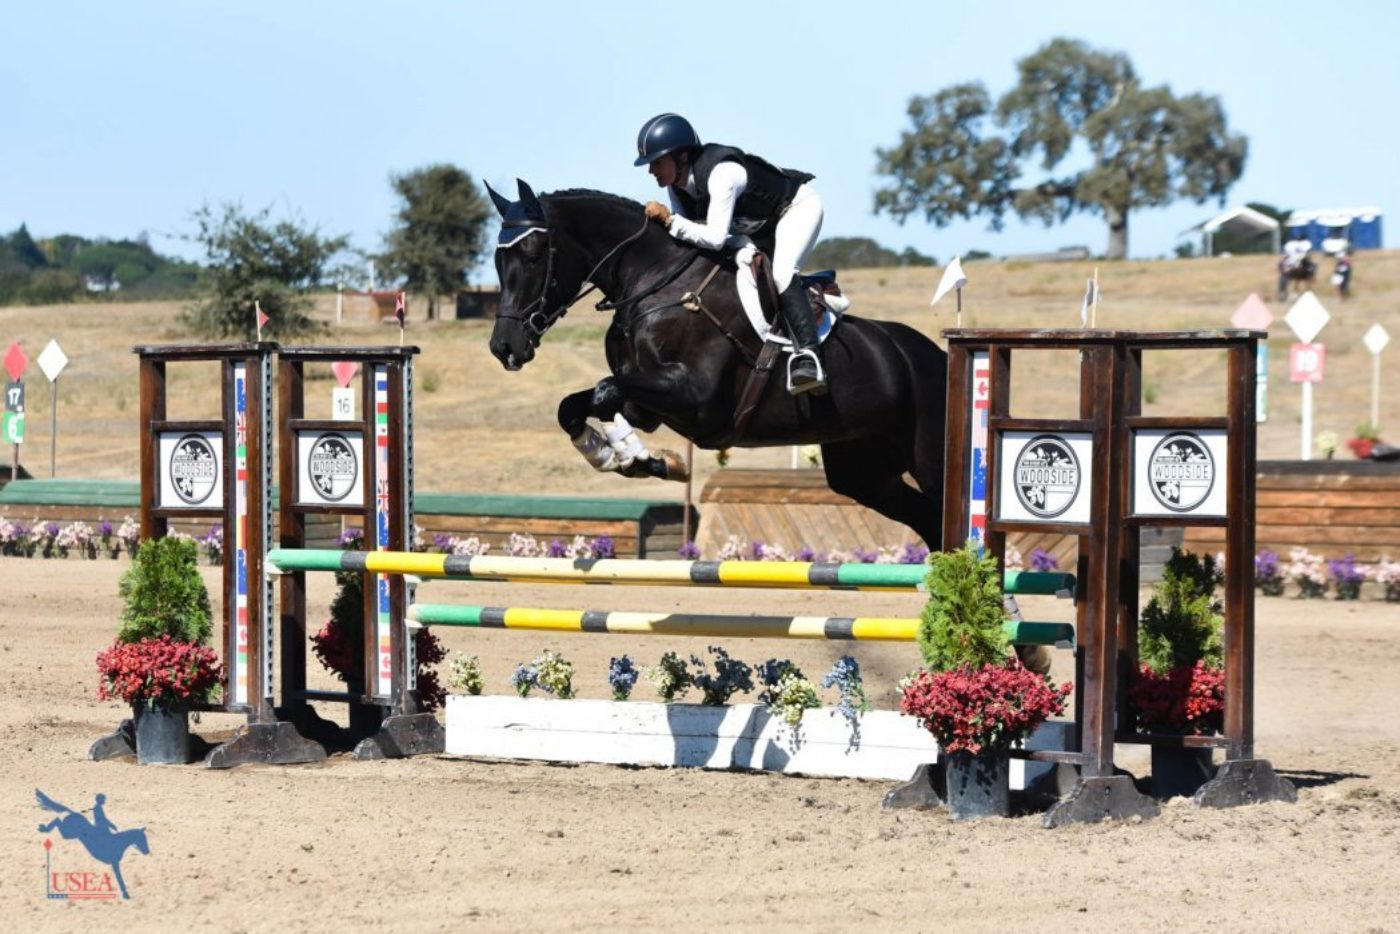 4th YEH-4 - Erin Kellerhouse and Reine Noire - 69.95